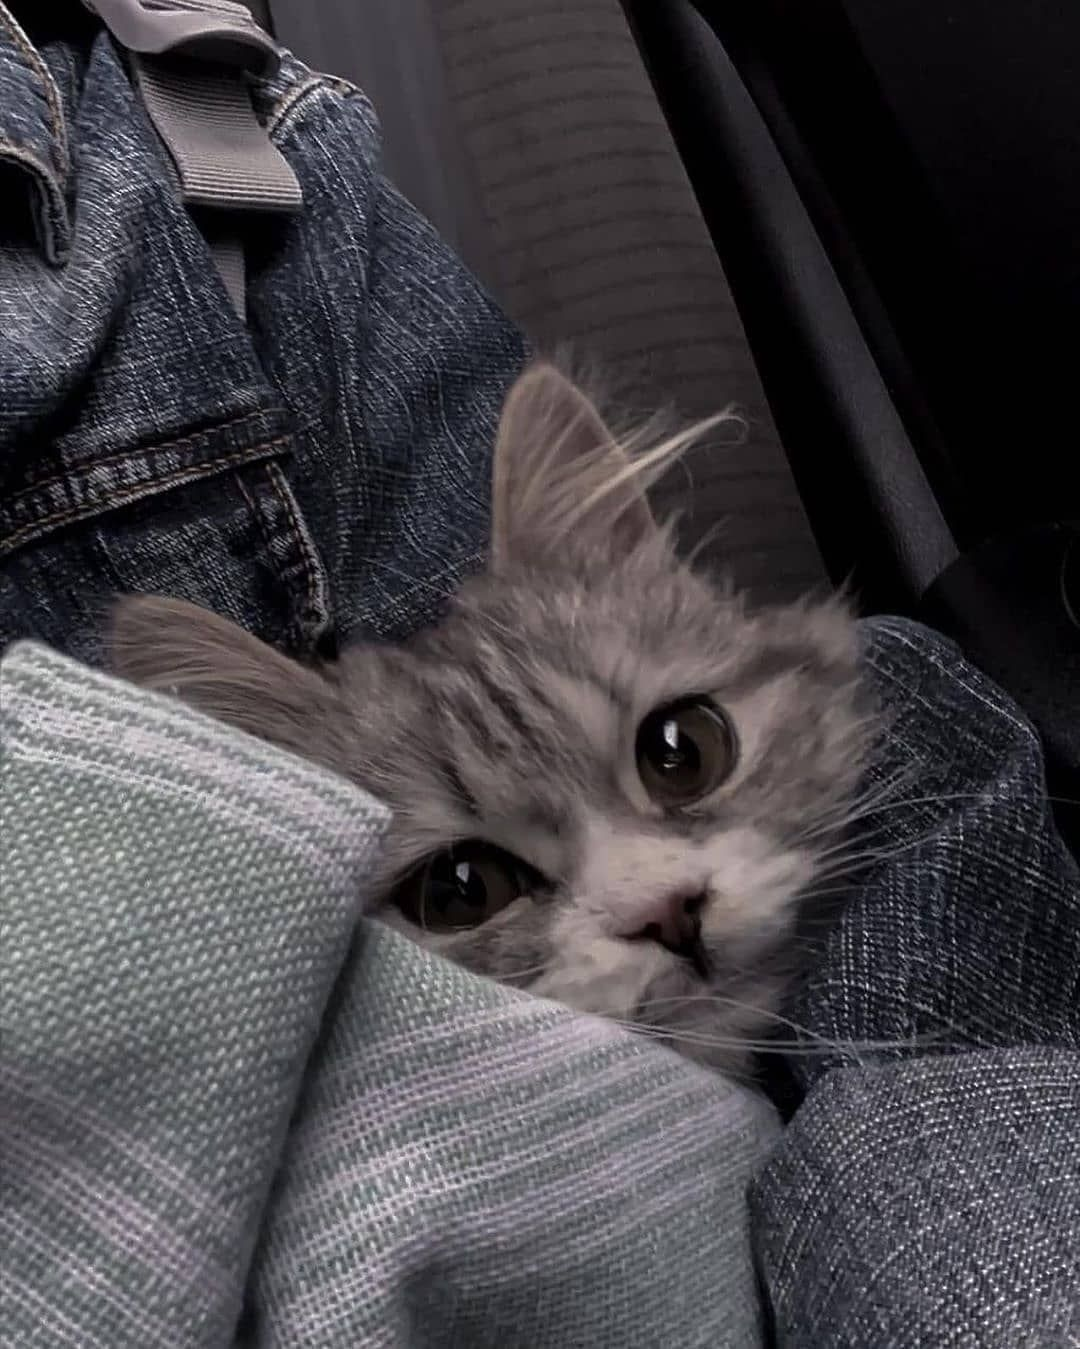 Cat Refuses To Eat After Human Dad Surrendered Him To The Shelter For A New Couch Sevimli Hayvan Yavrulari Komik Hayvan Komik Kedi Resimleri